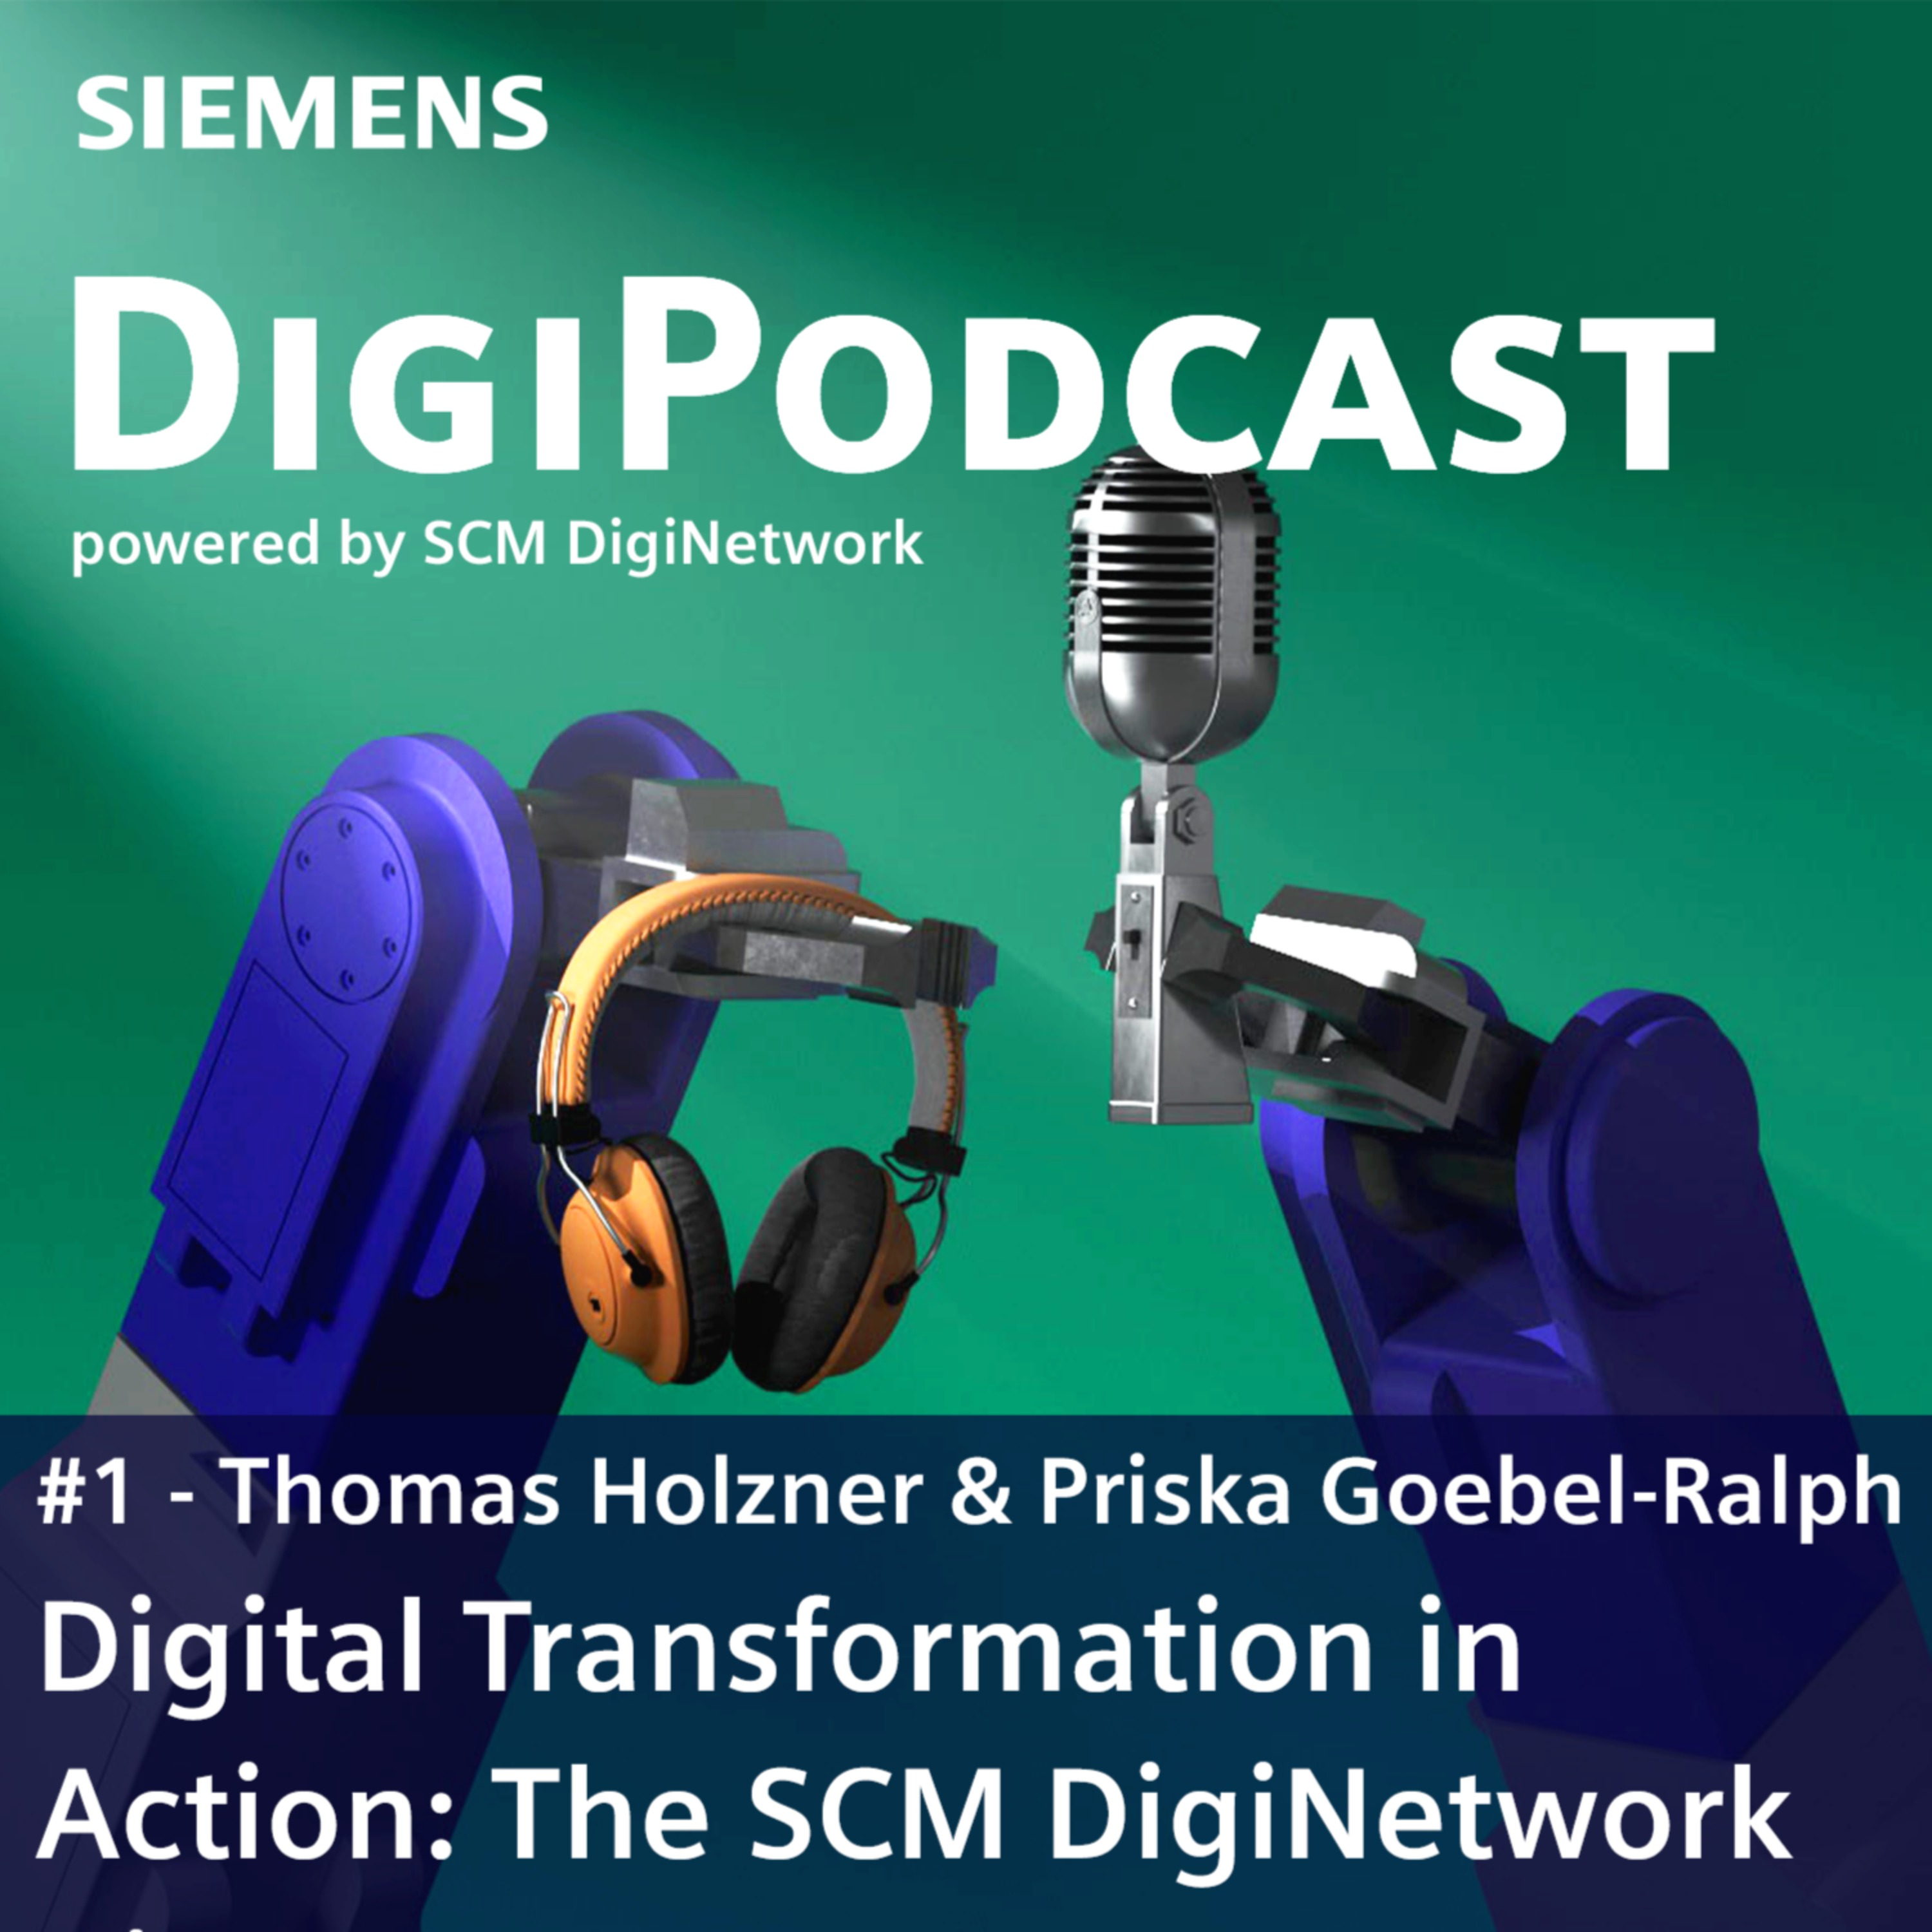 Digital Transformation in Action: The SCM DigiNetwork